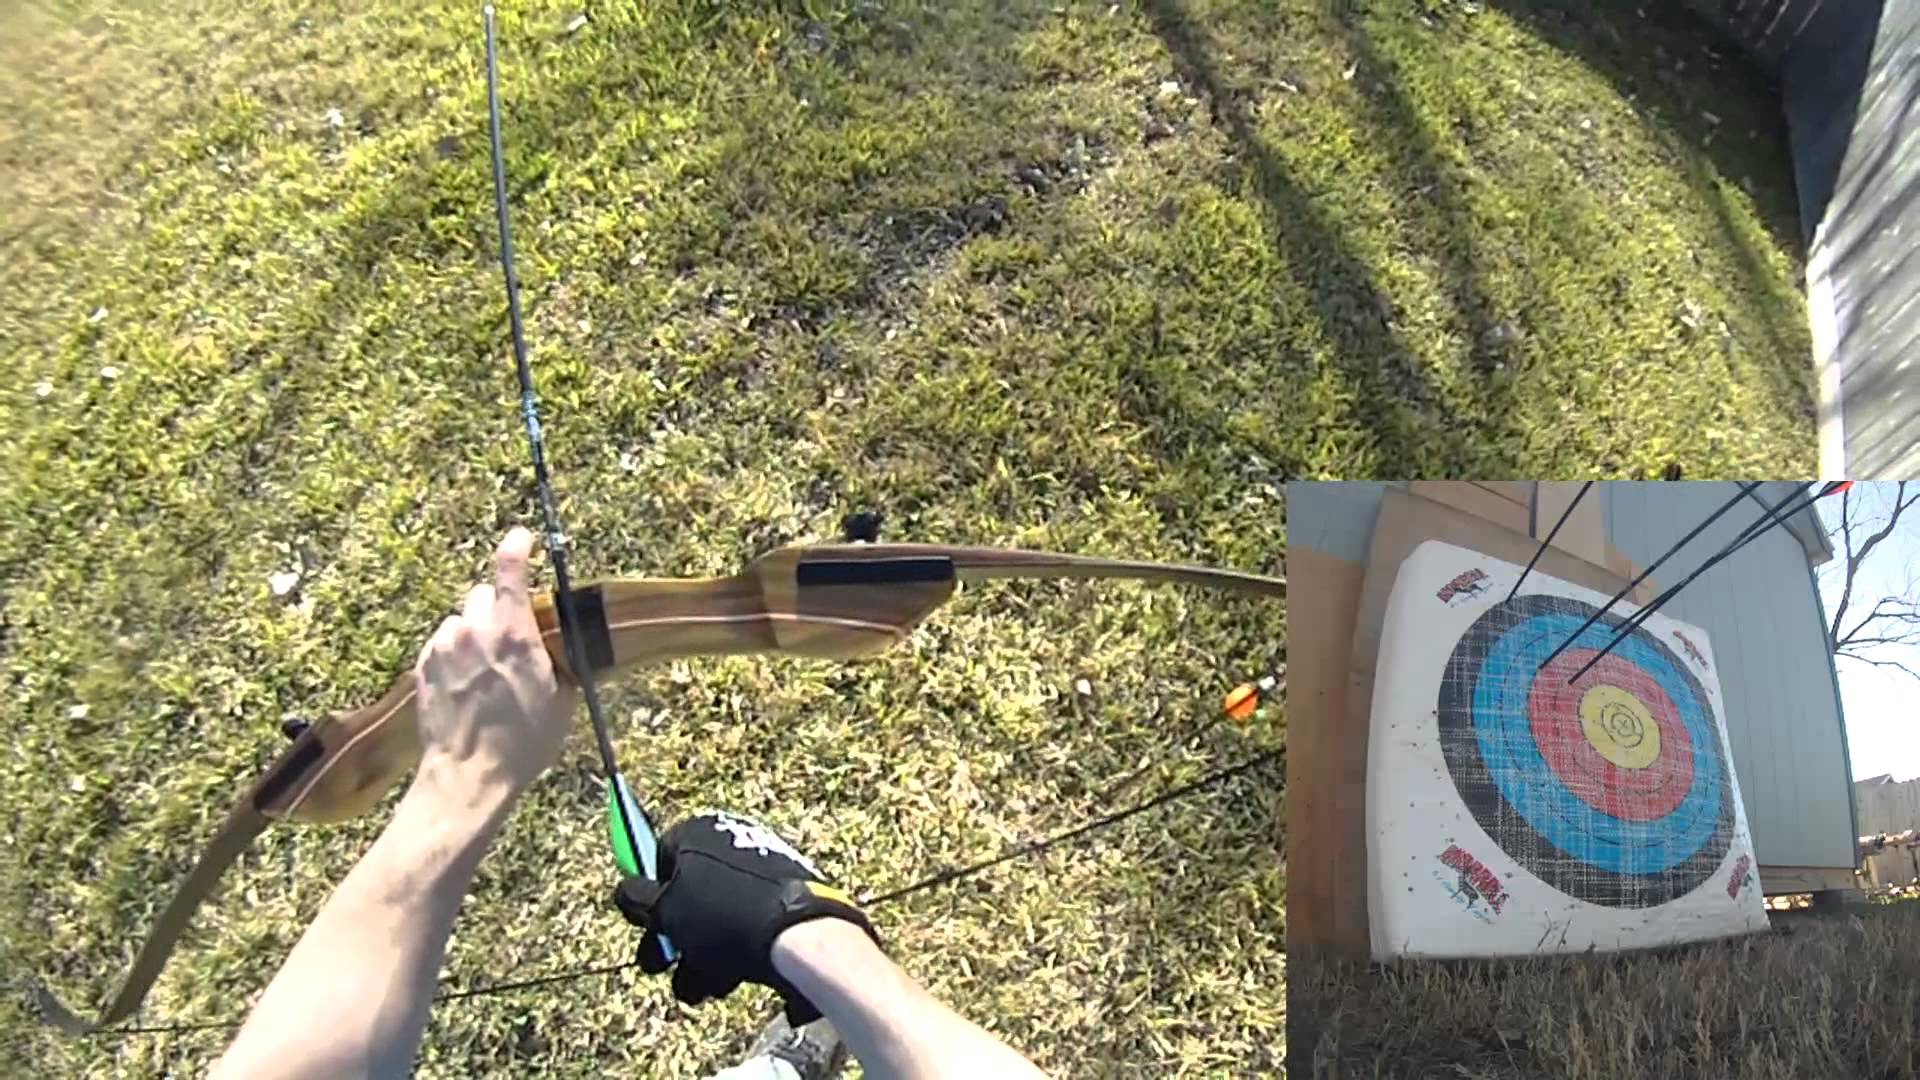 PSE Stalker Review - a Recurve Bow Rating and Analysis